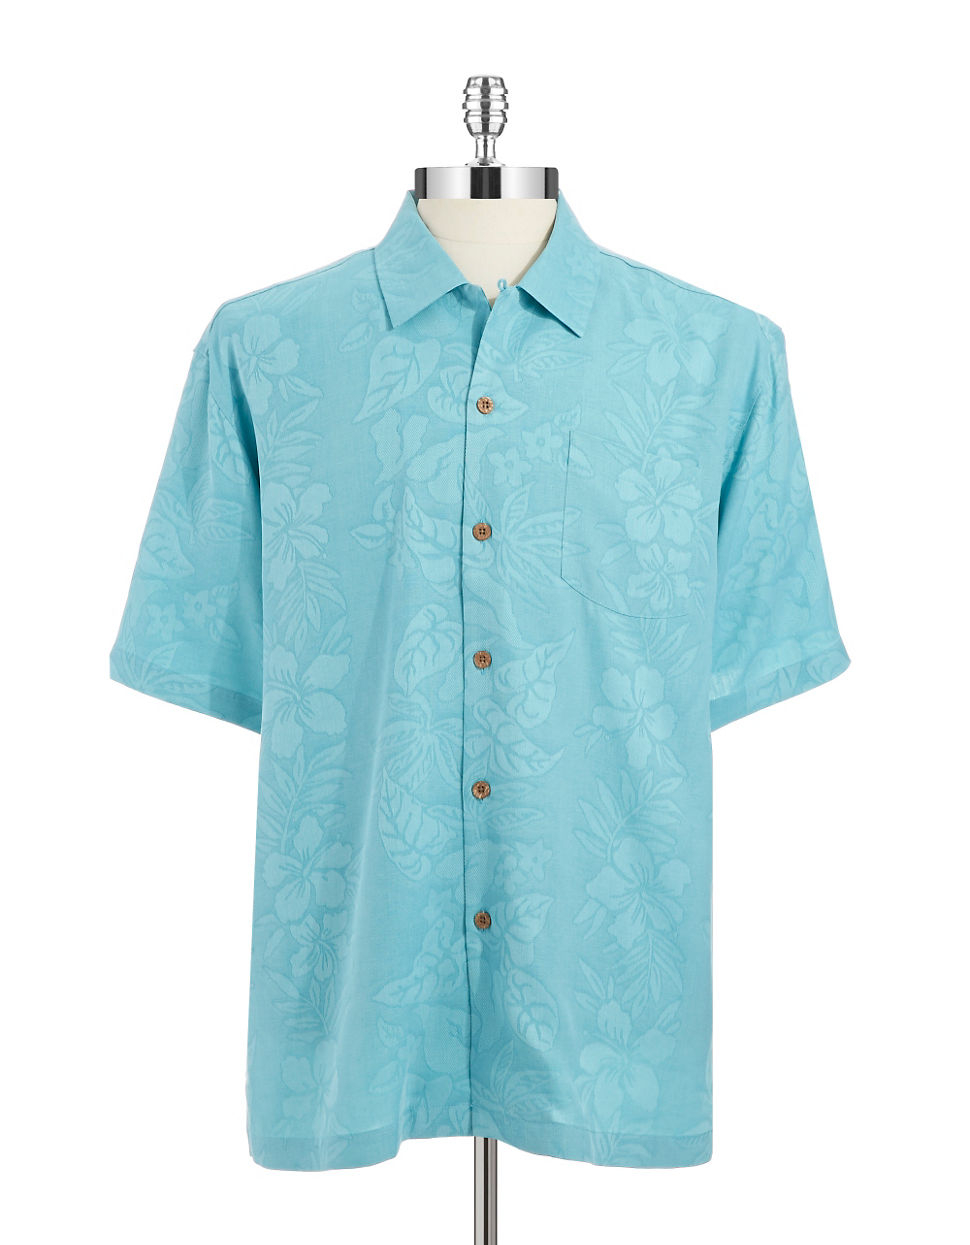 Tommy Bahama Silk Garden Hope Button Front Shirt In Blue